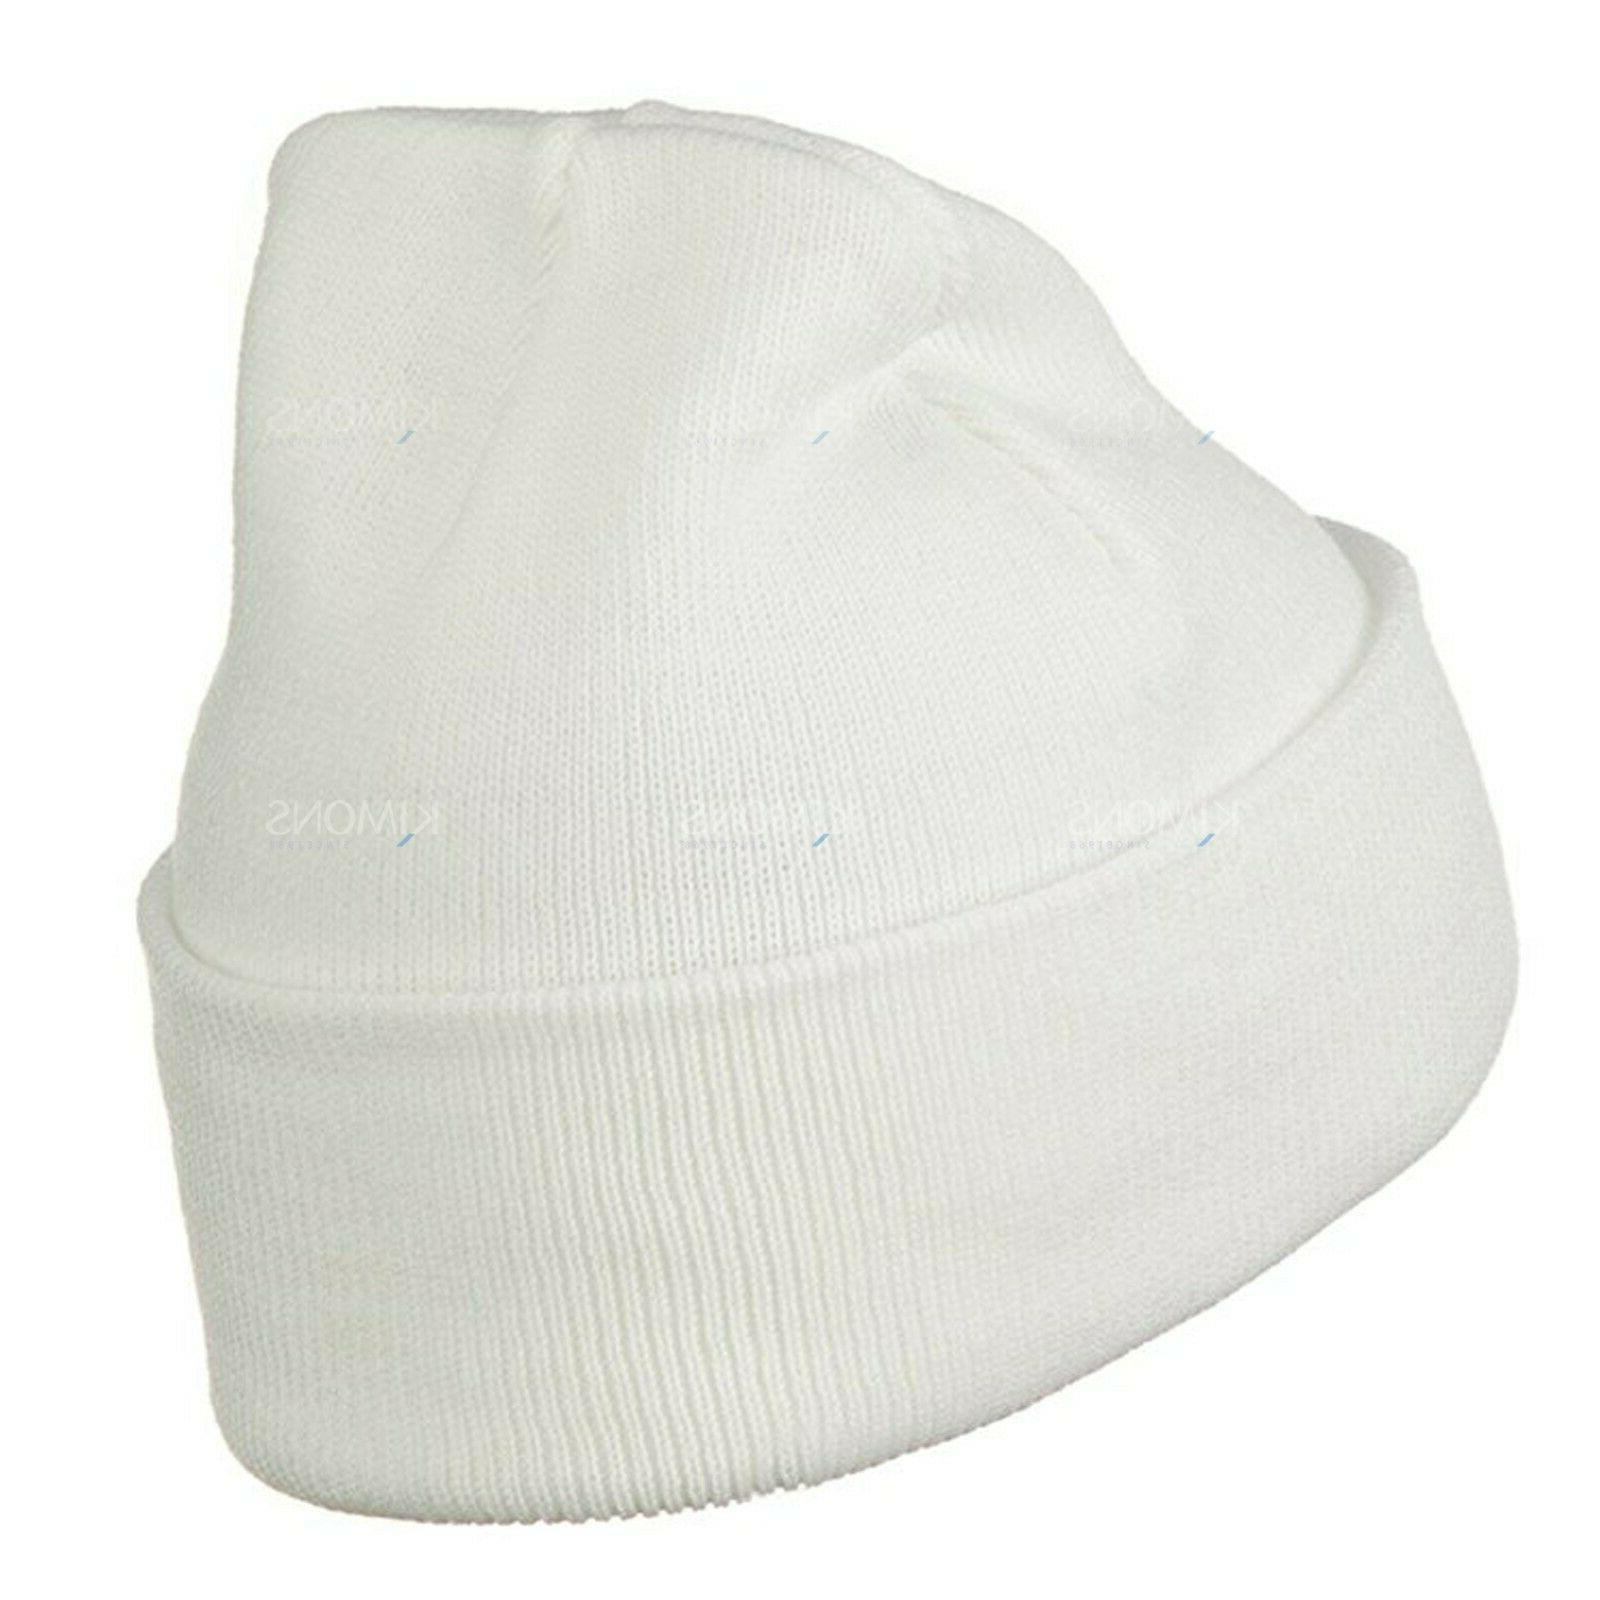 Beanie Plain Winter Slouchy Skull Ski Warm Men